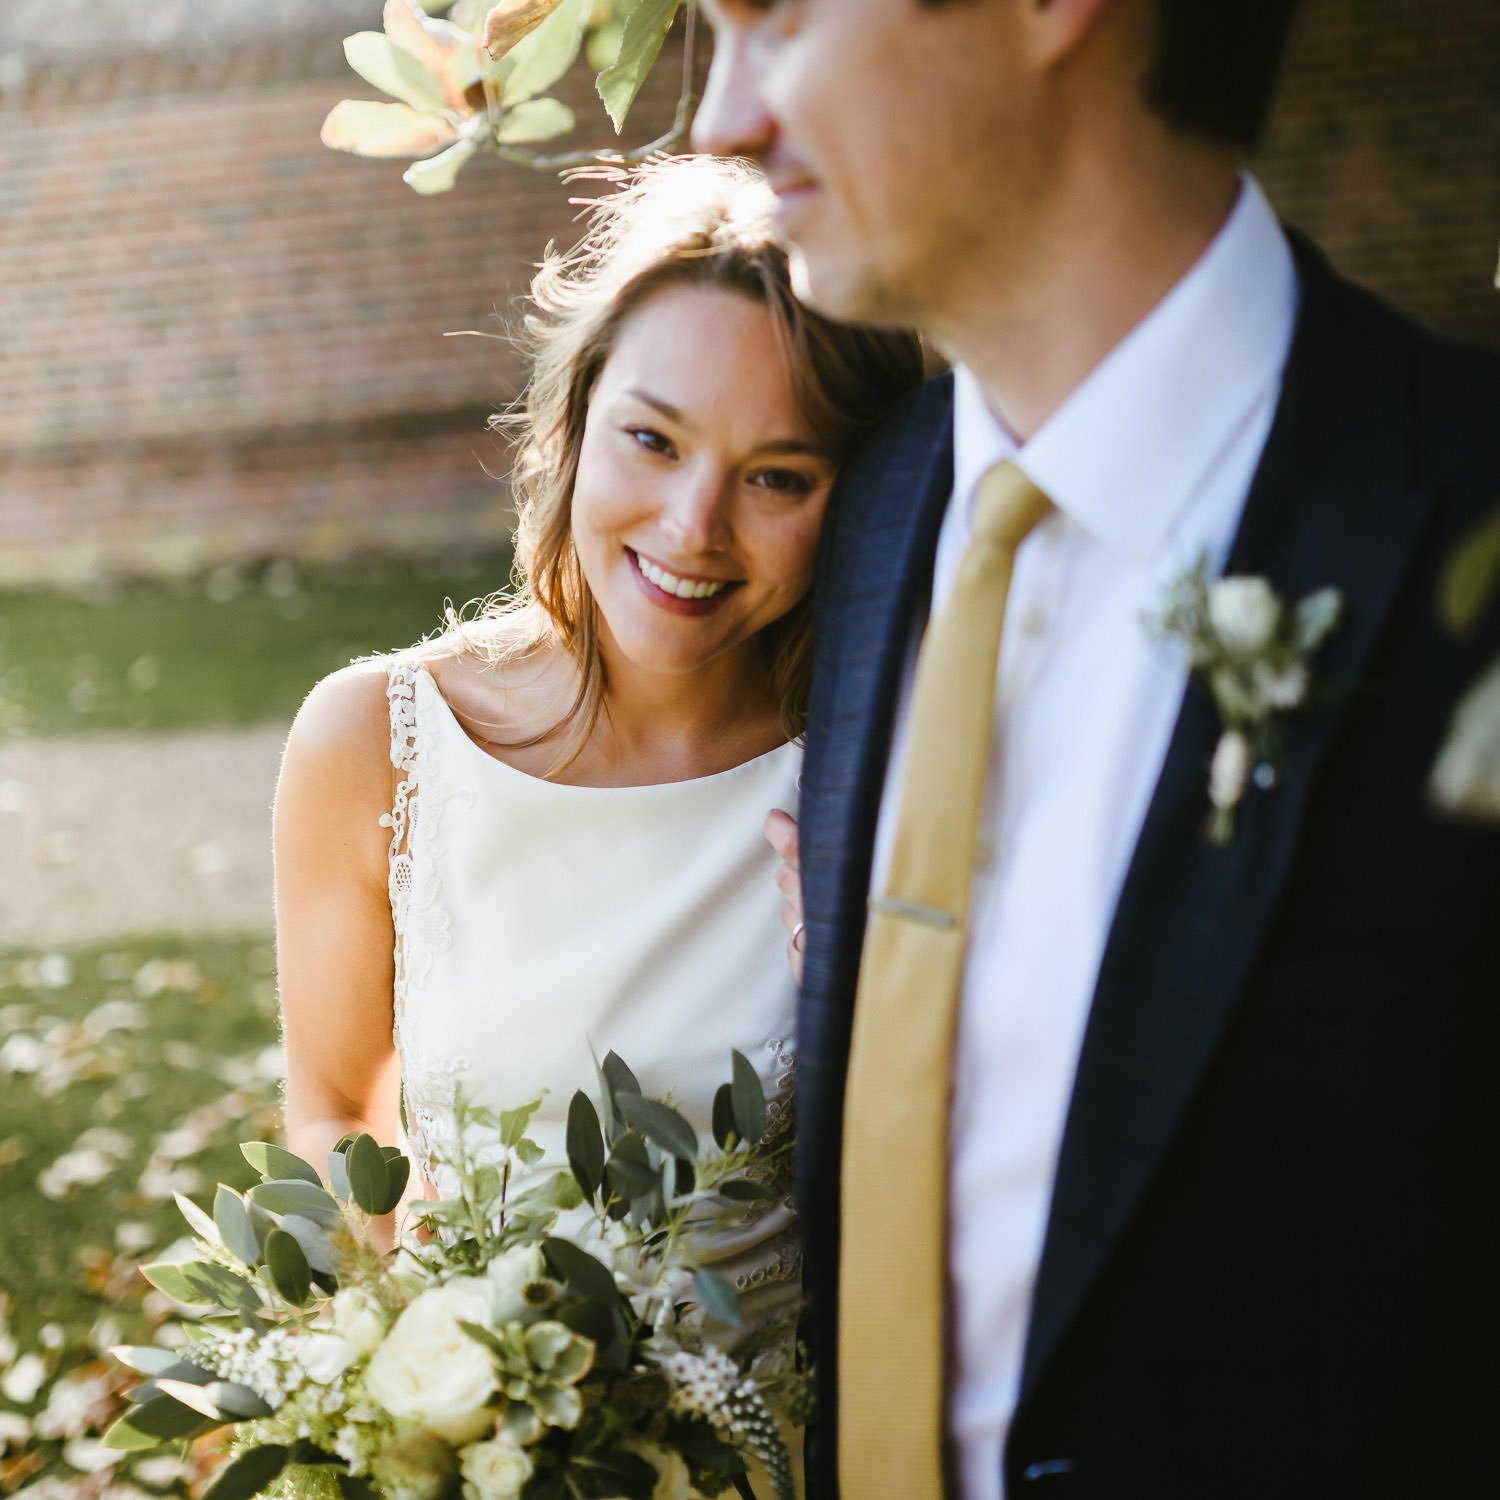 DODDINGTON HALL WEDDING GUIDE 2